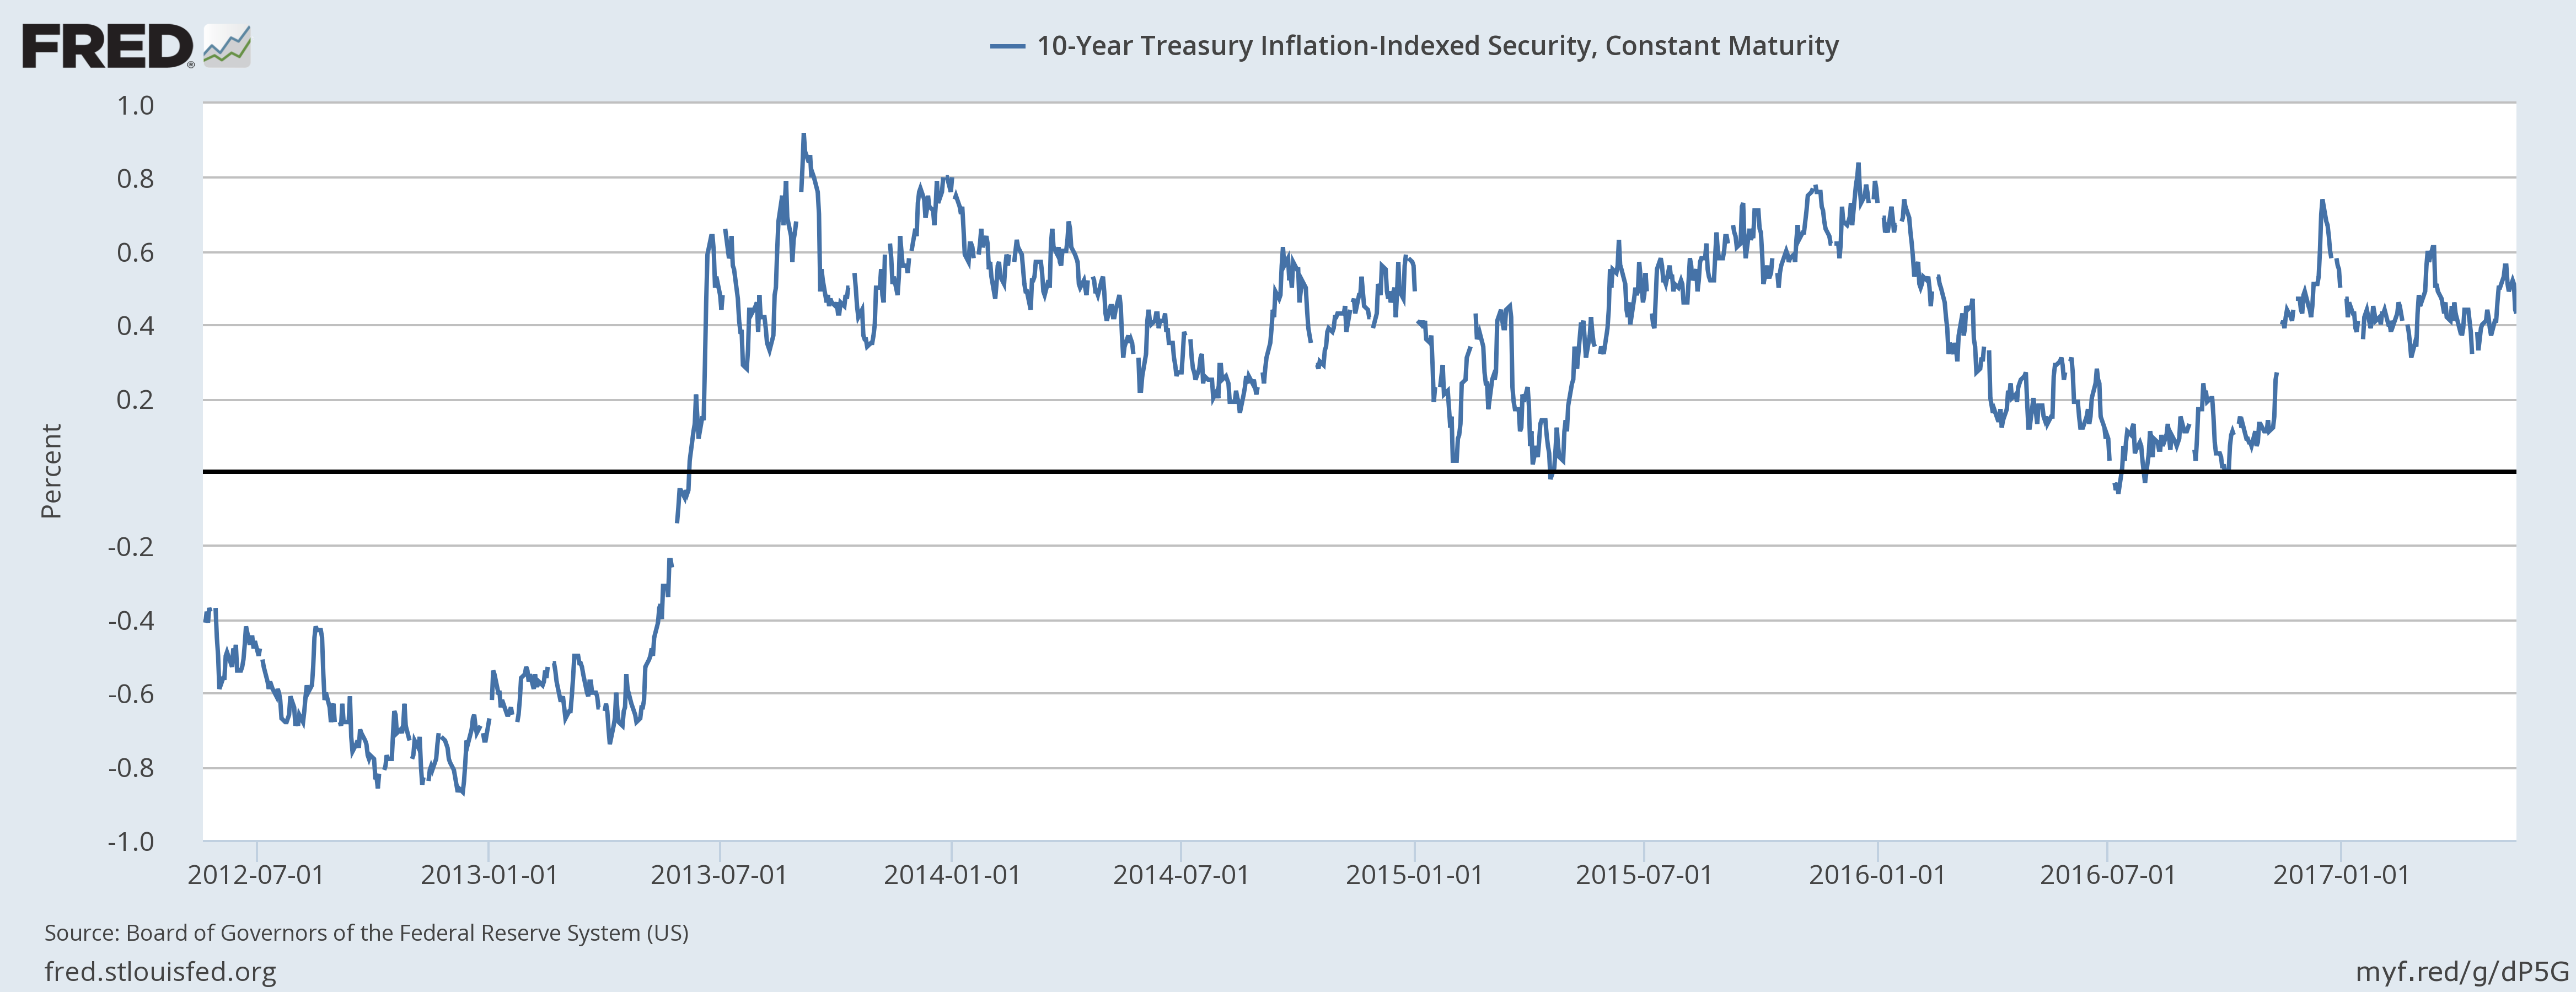 10 - Year Treasury Inflation - Indexed Security And Constant Maturity, July 2013 - May 2017